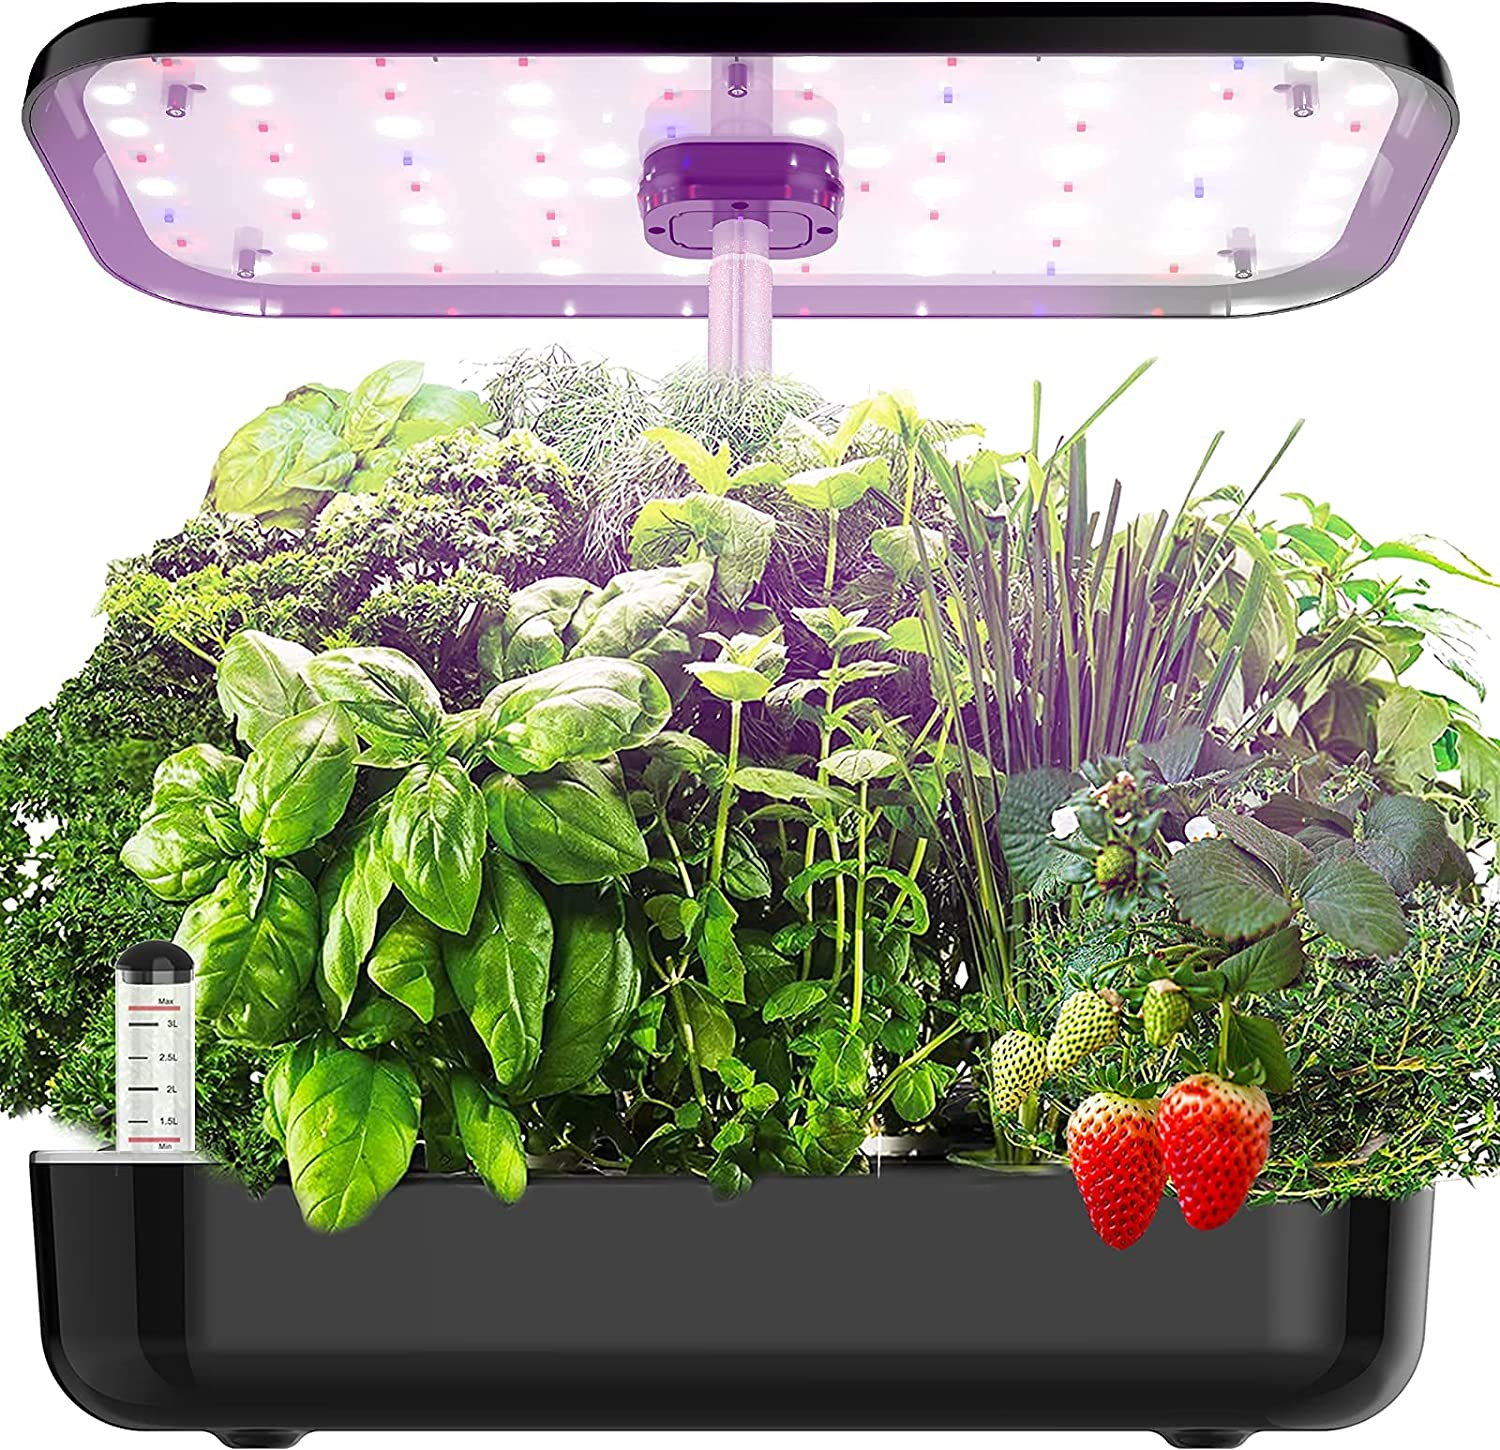 Hydroponics Growing System, EZORKAS 12 Pods Indoor Herb Garden Starter Kit with LED Grow Light, Smart Germination Kit Garden Planter for Family Home Kitchen with Cycle Timing Function